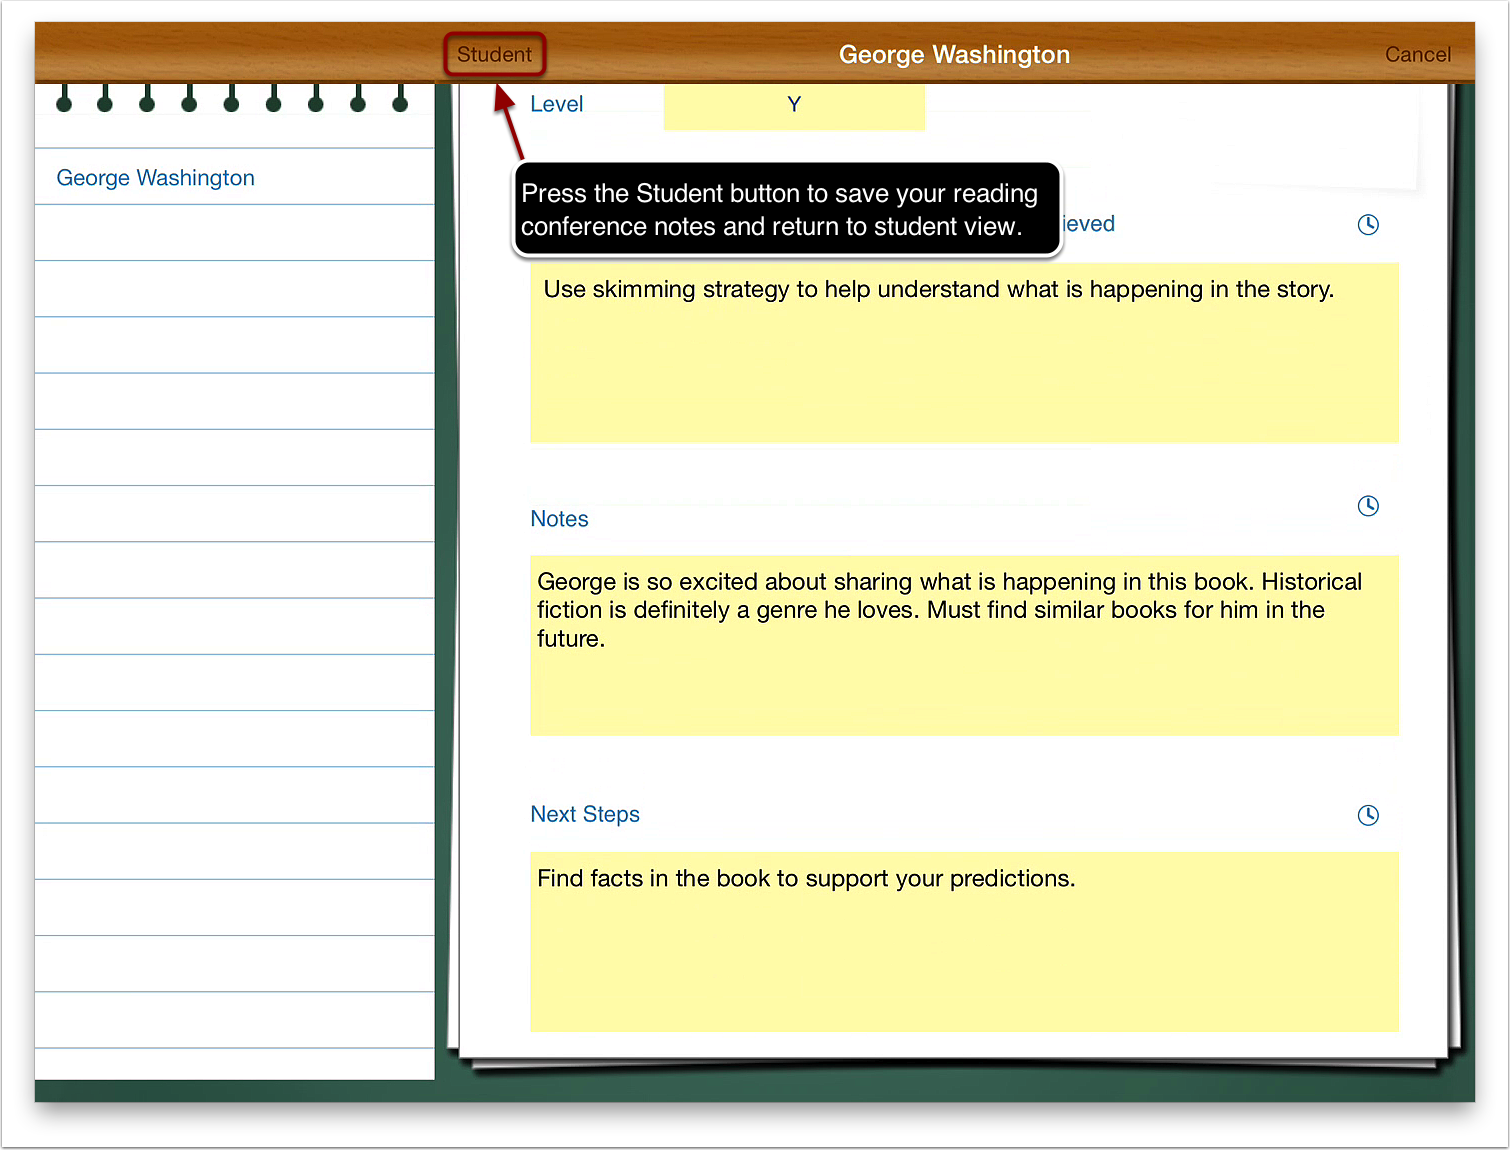 7. Press the Student button to save your reading conference notes and return to student view.